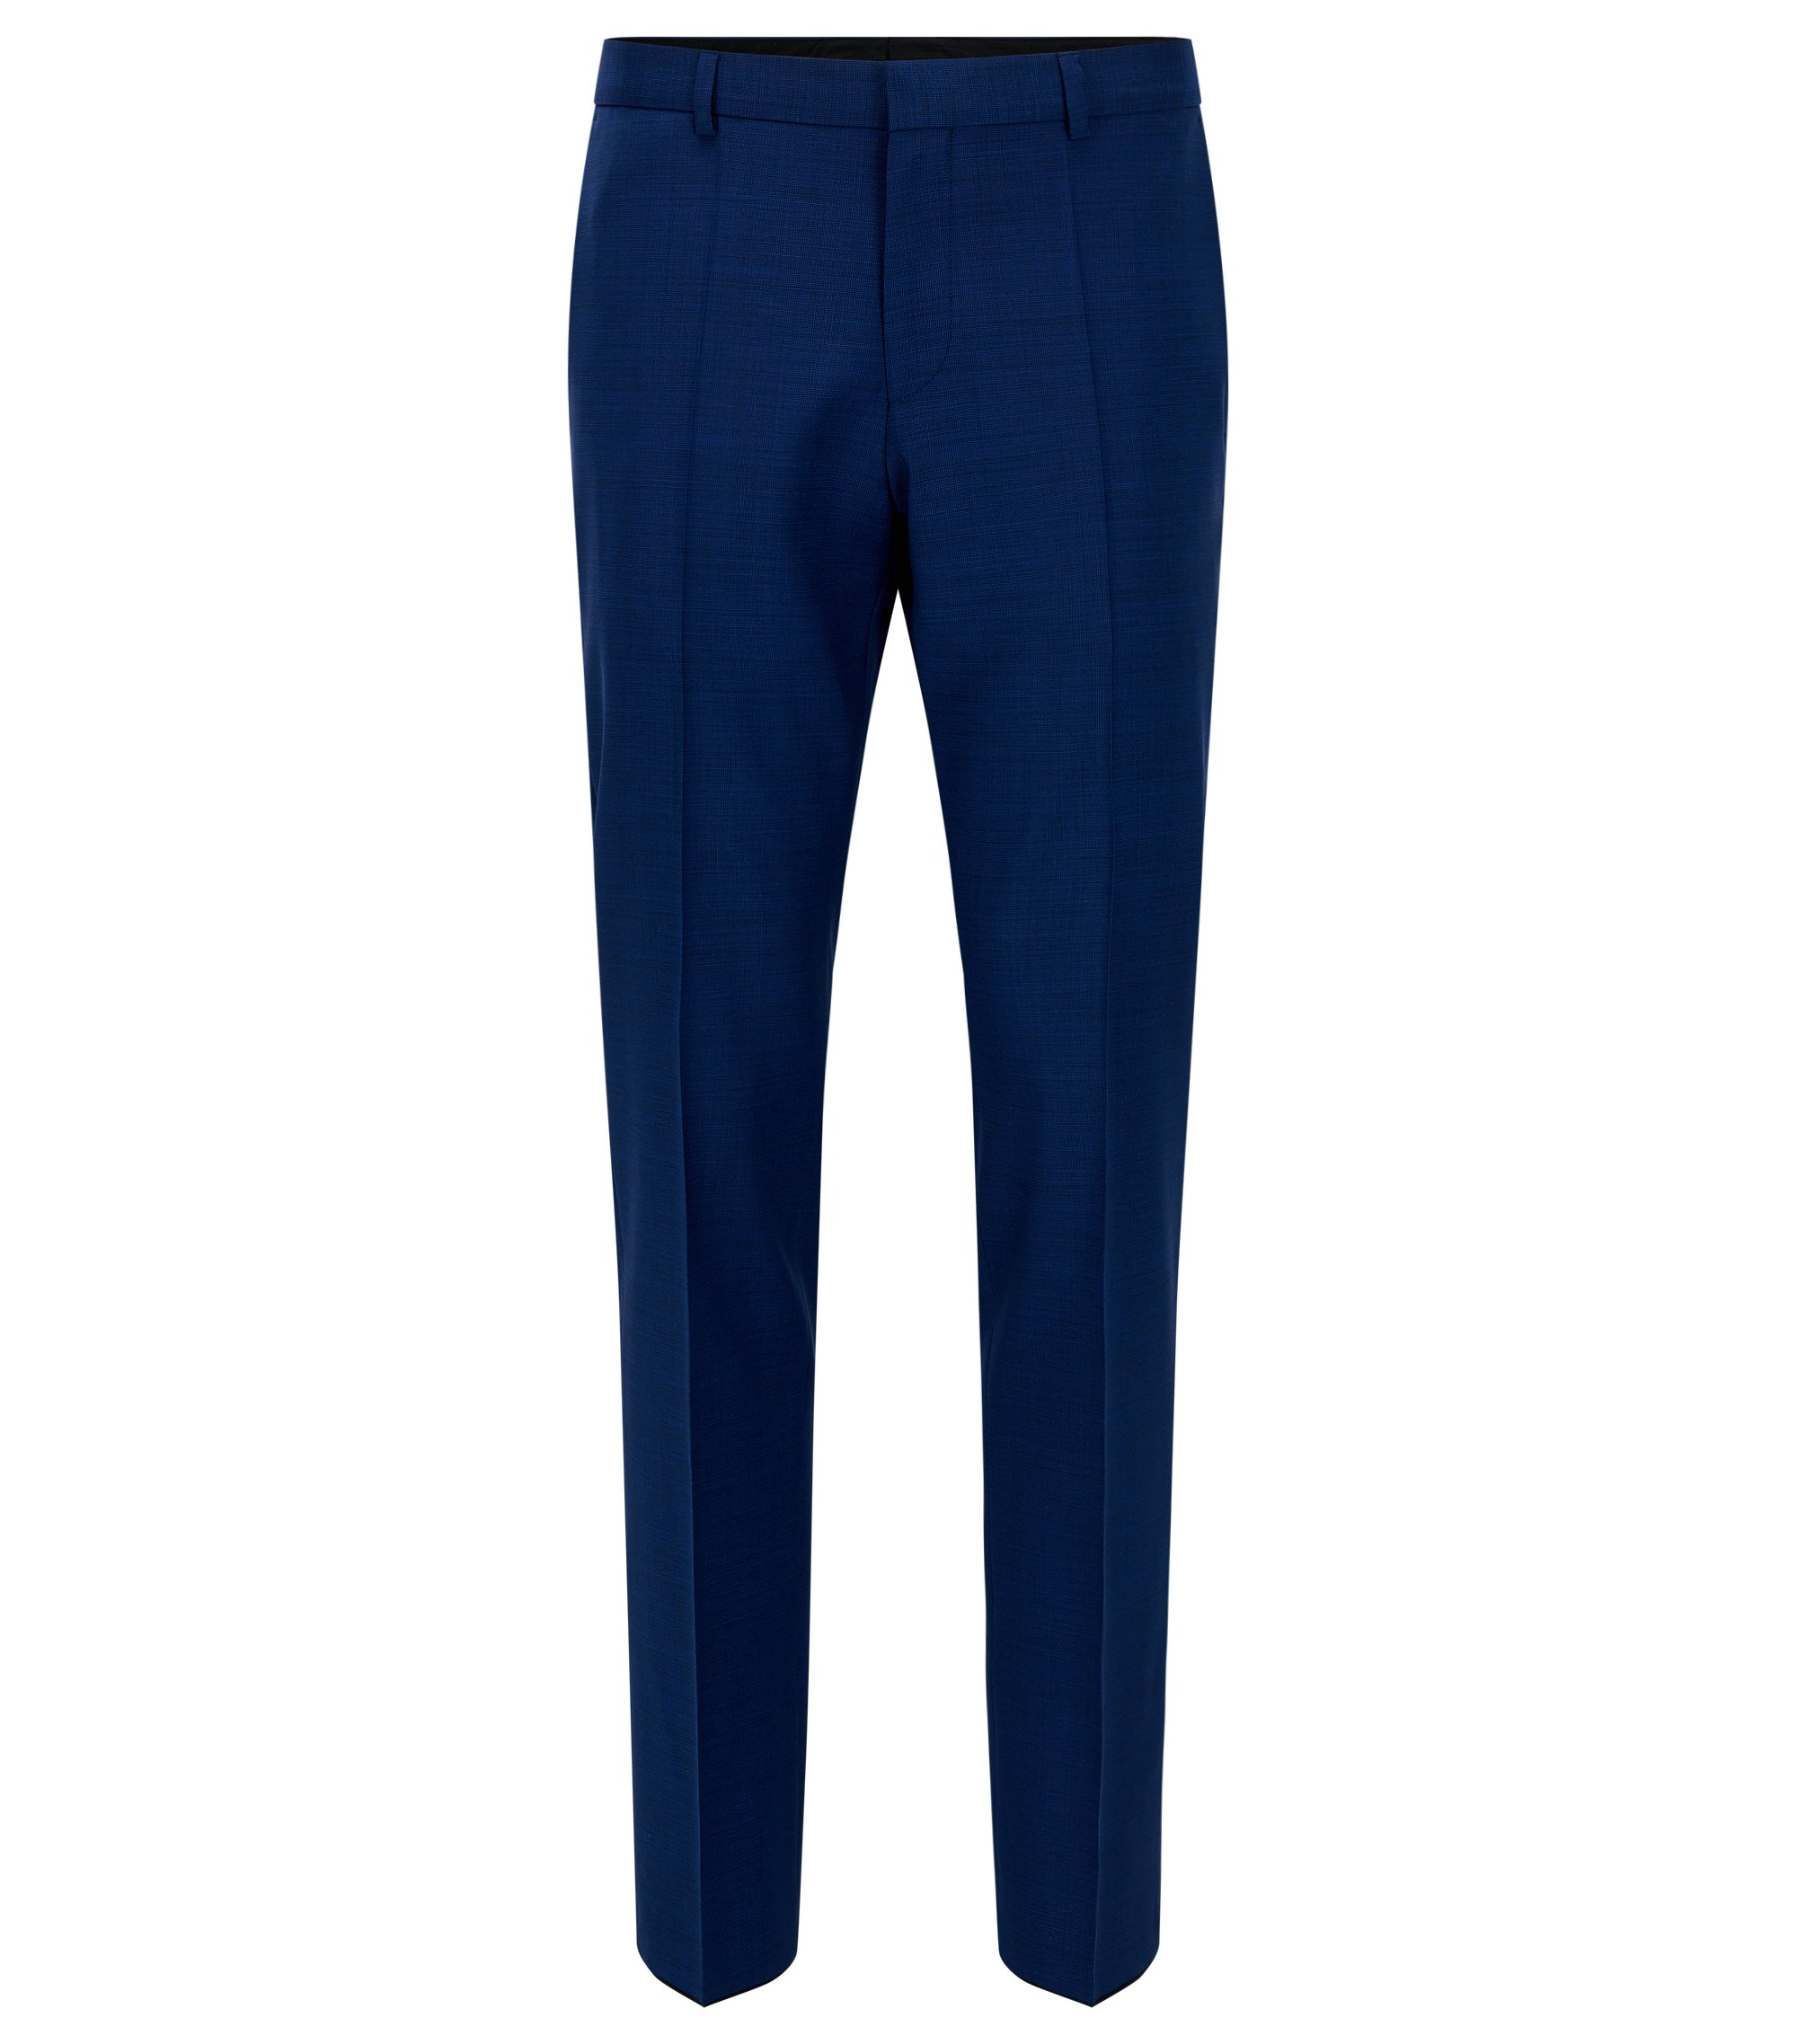 Basketweave Wool Dress Pant, Slim Fit | C-Genius, Blue